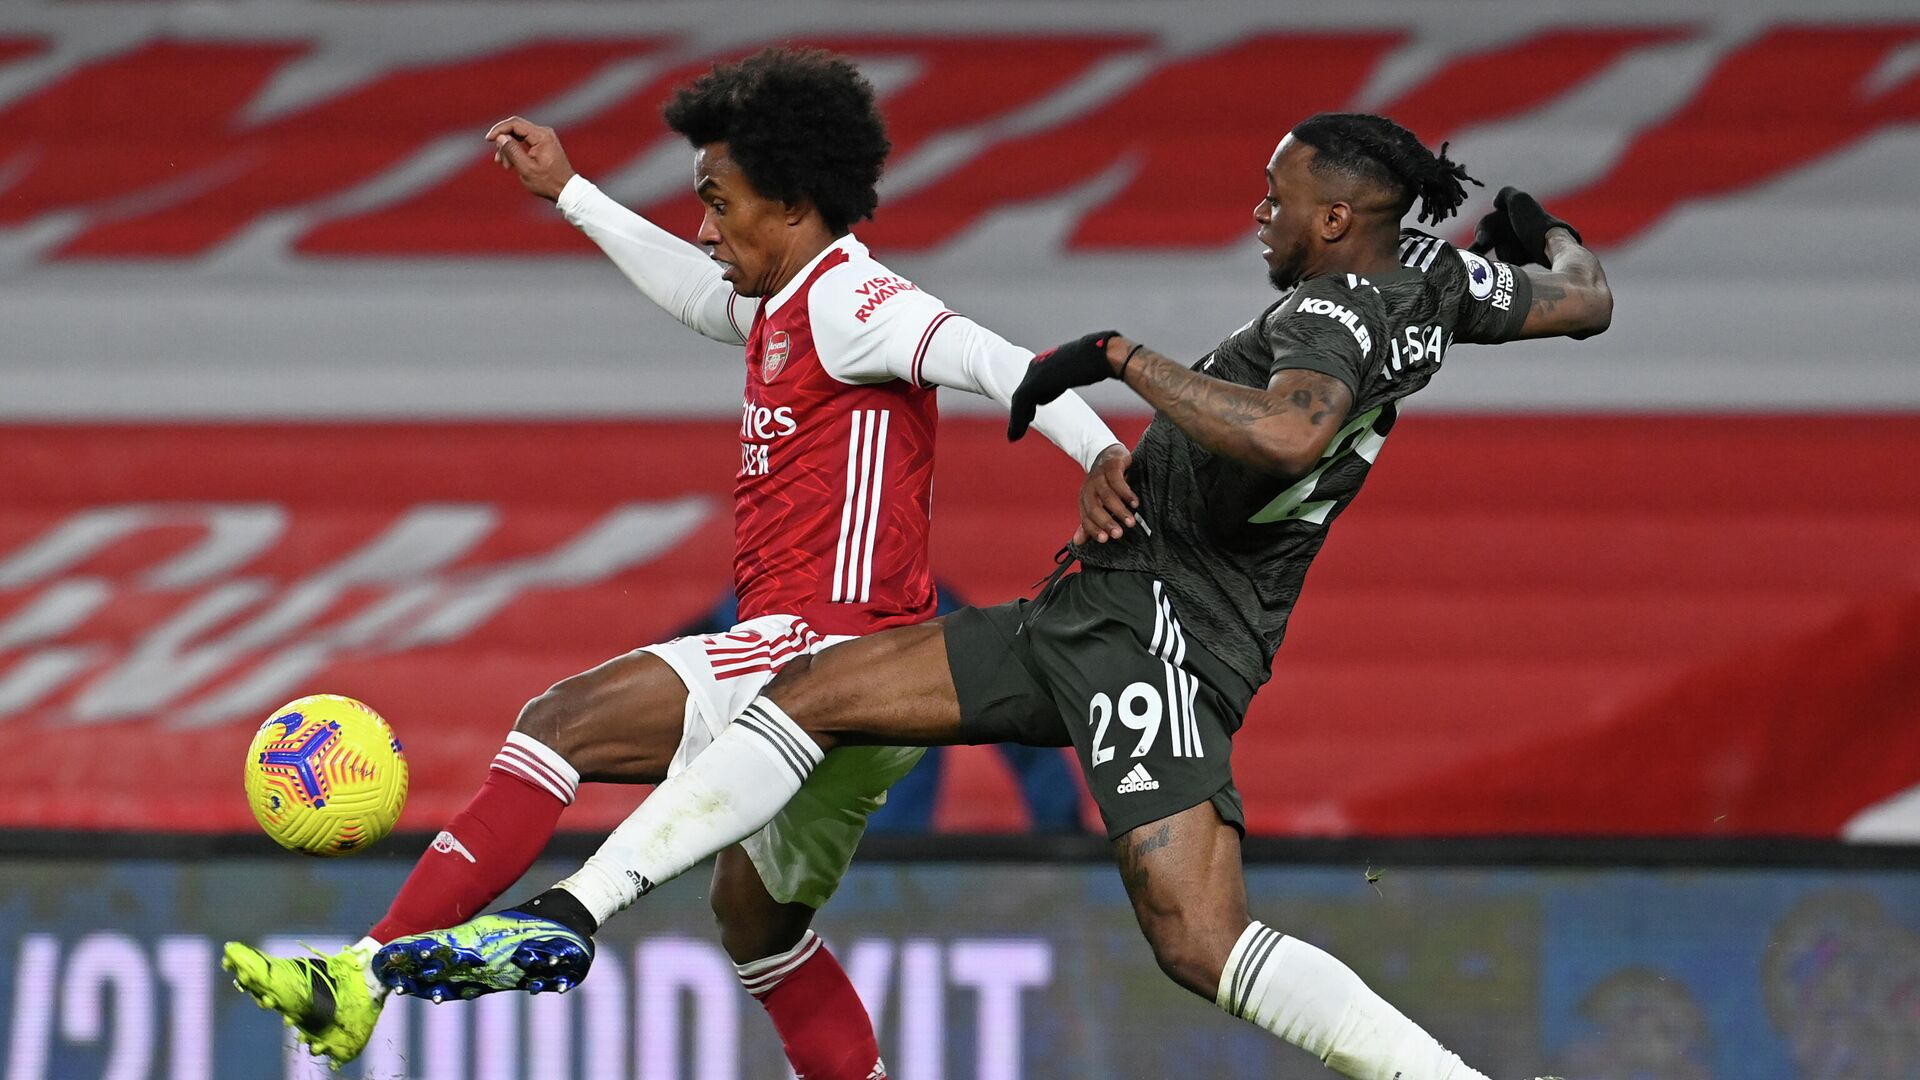 Arsenal's Brazilian midfielder Willian (L) vies with Manchester United's English defender Aaron Wan-Bissaka (R) during the English Premier League football match between Arsenal and Manchester United at the Emirates Stadium in London on January 30, 2021. (Photo by Andy Rain / POOL / AFP) / RESTRICTED TO EDITORIAL USE. No use with unauthorized audio, video, data, fixture lists, club/league logos or 'live' services. Online in-match use limited to 120 images. An additional 40 images may be used in extra time. No video emulation. Social media in-match use limited to 120 images. An additional 40 images may be used in extra time. No use in betting publications, games or single club/league/player publications. /  - РИА Новости, 1920, 30.01.2021